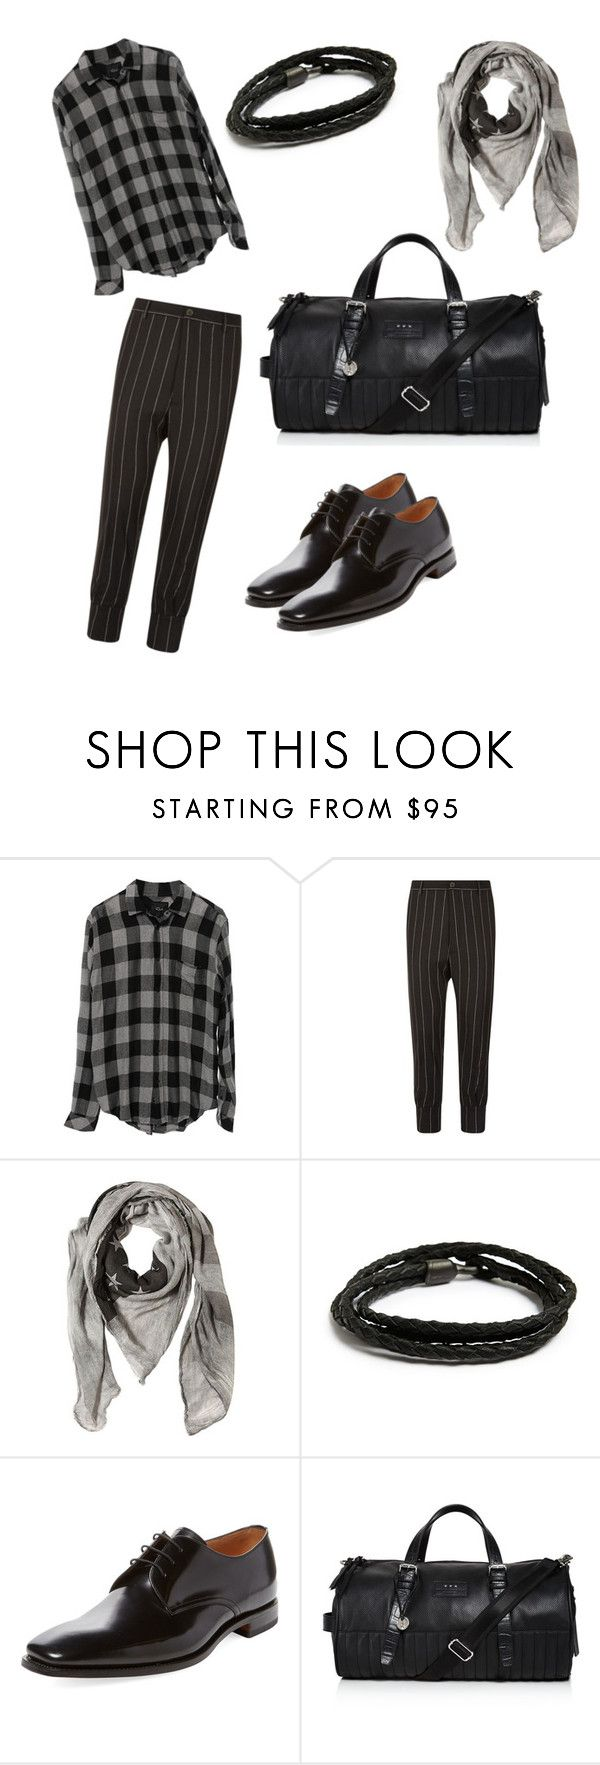 """""""Men's Semi-Formal Look ( Prints and Patterns)"""" by harshal-singhai on Polyvore featuring Vivienne Westwood, John Varvatos, MIANSAI, Loake and John Varvatos * U.S.A."""